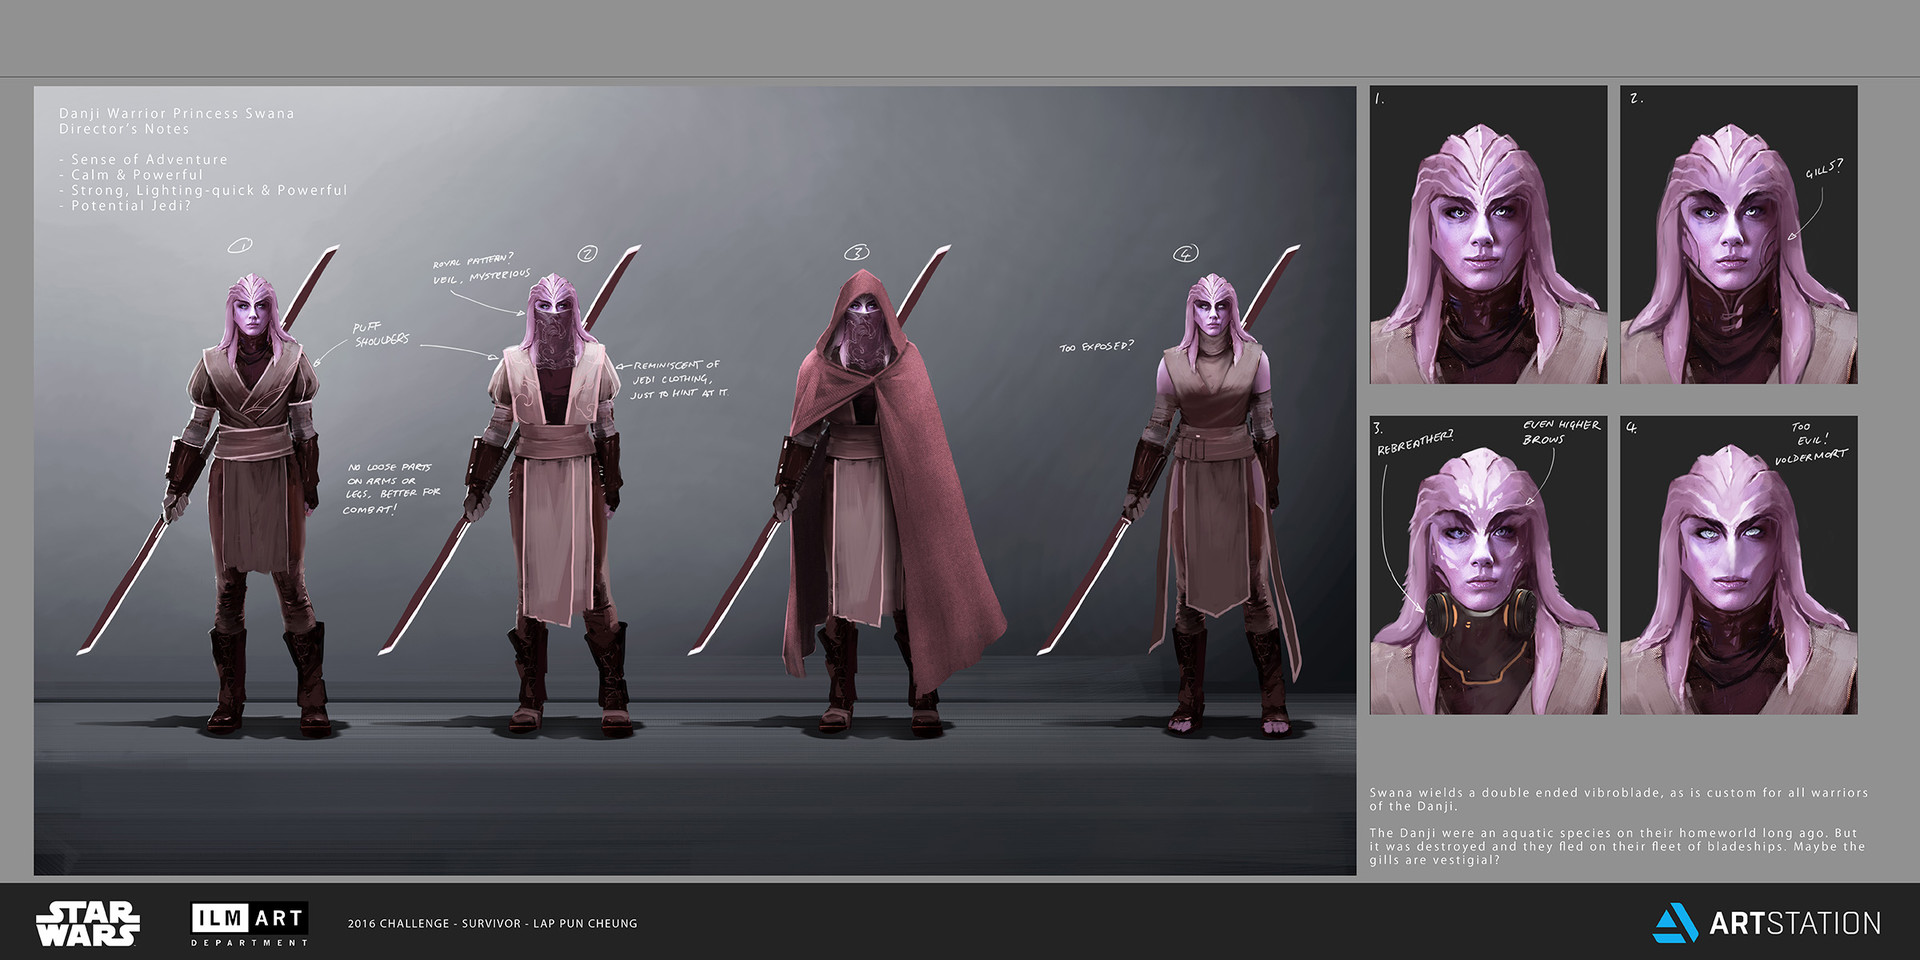 Lap pun cheung the job character design danji warrior princess swana concept art 001 online